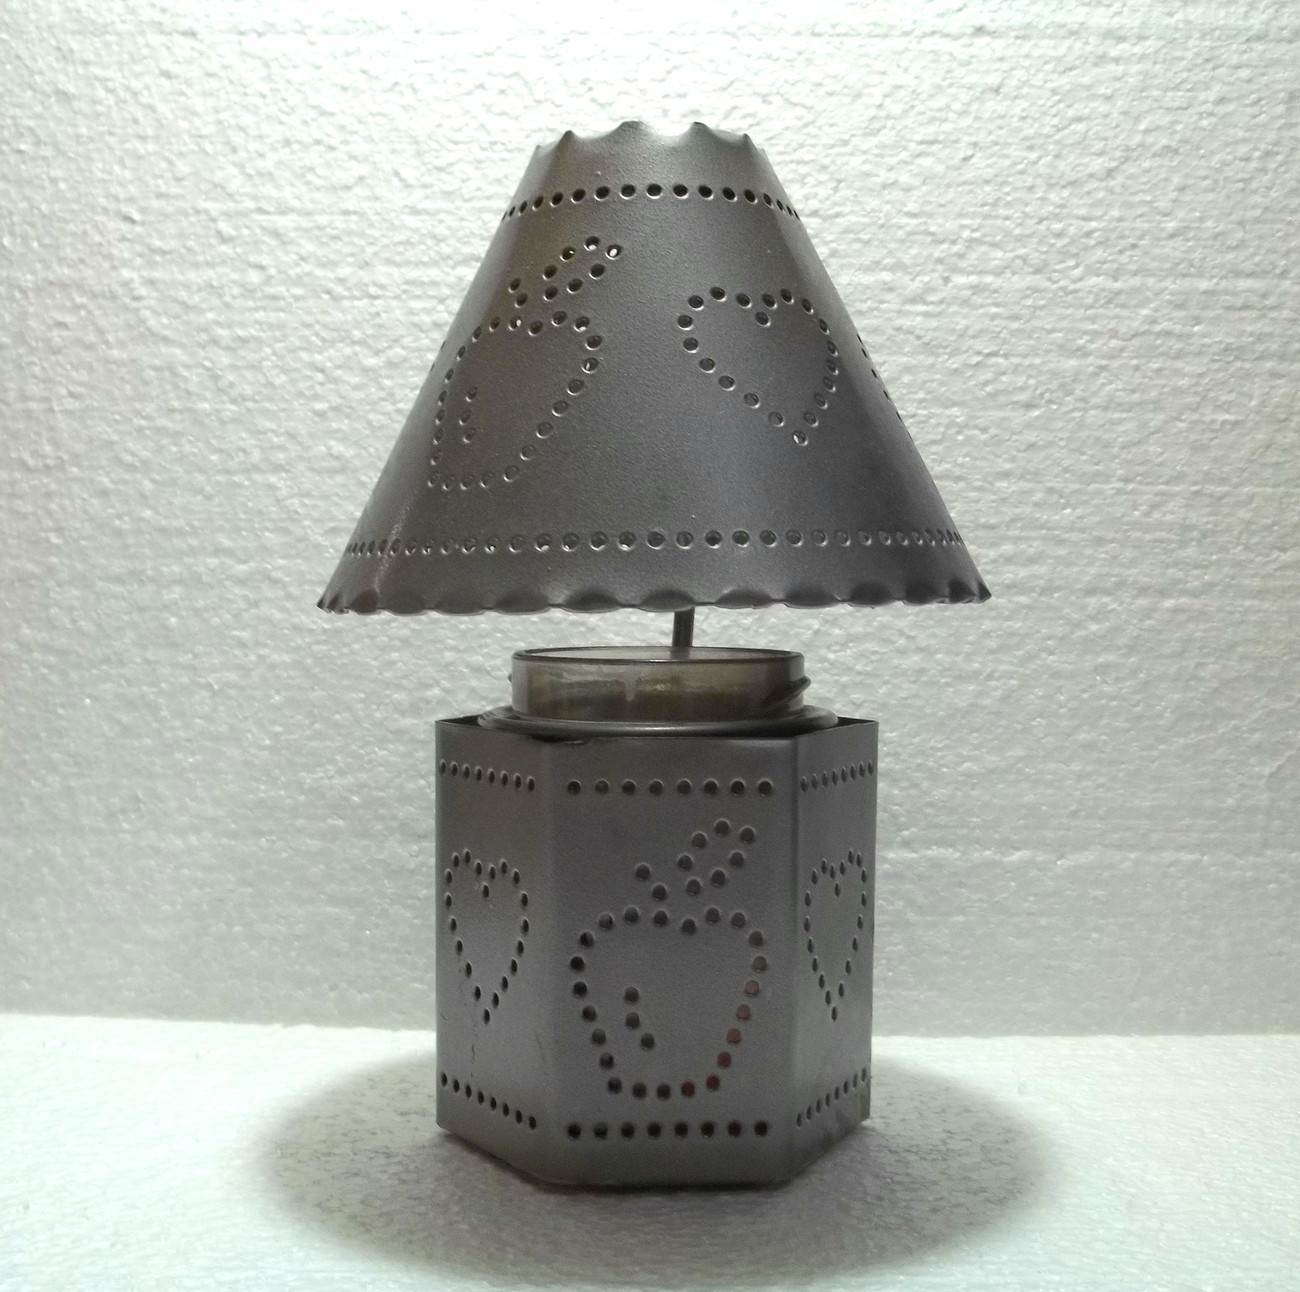 Home Interiors Pierced Tin Candle Holder And Shade Candle Holders Accessories